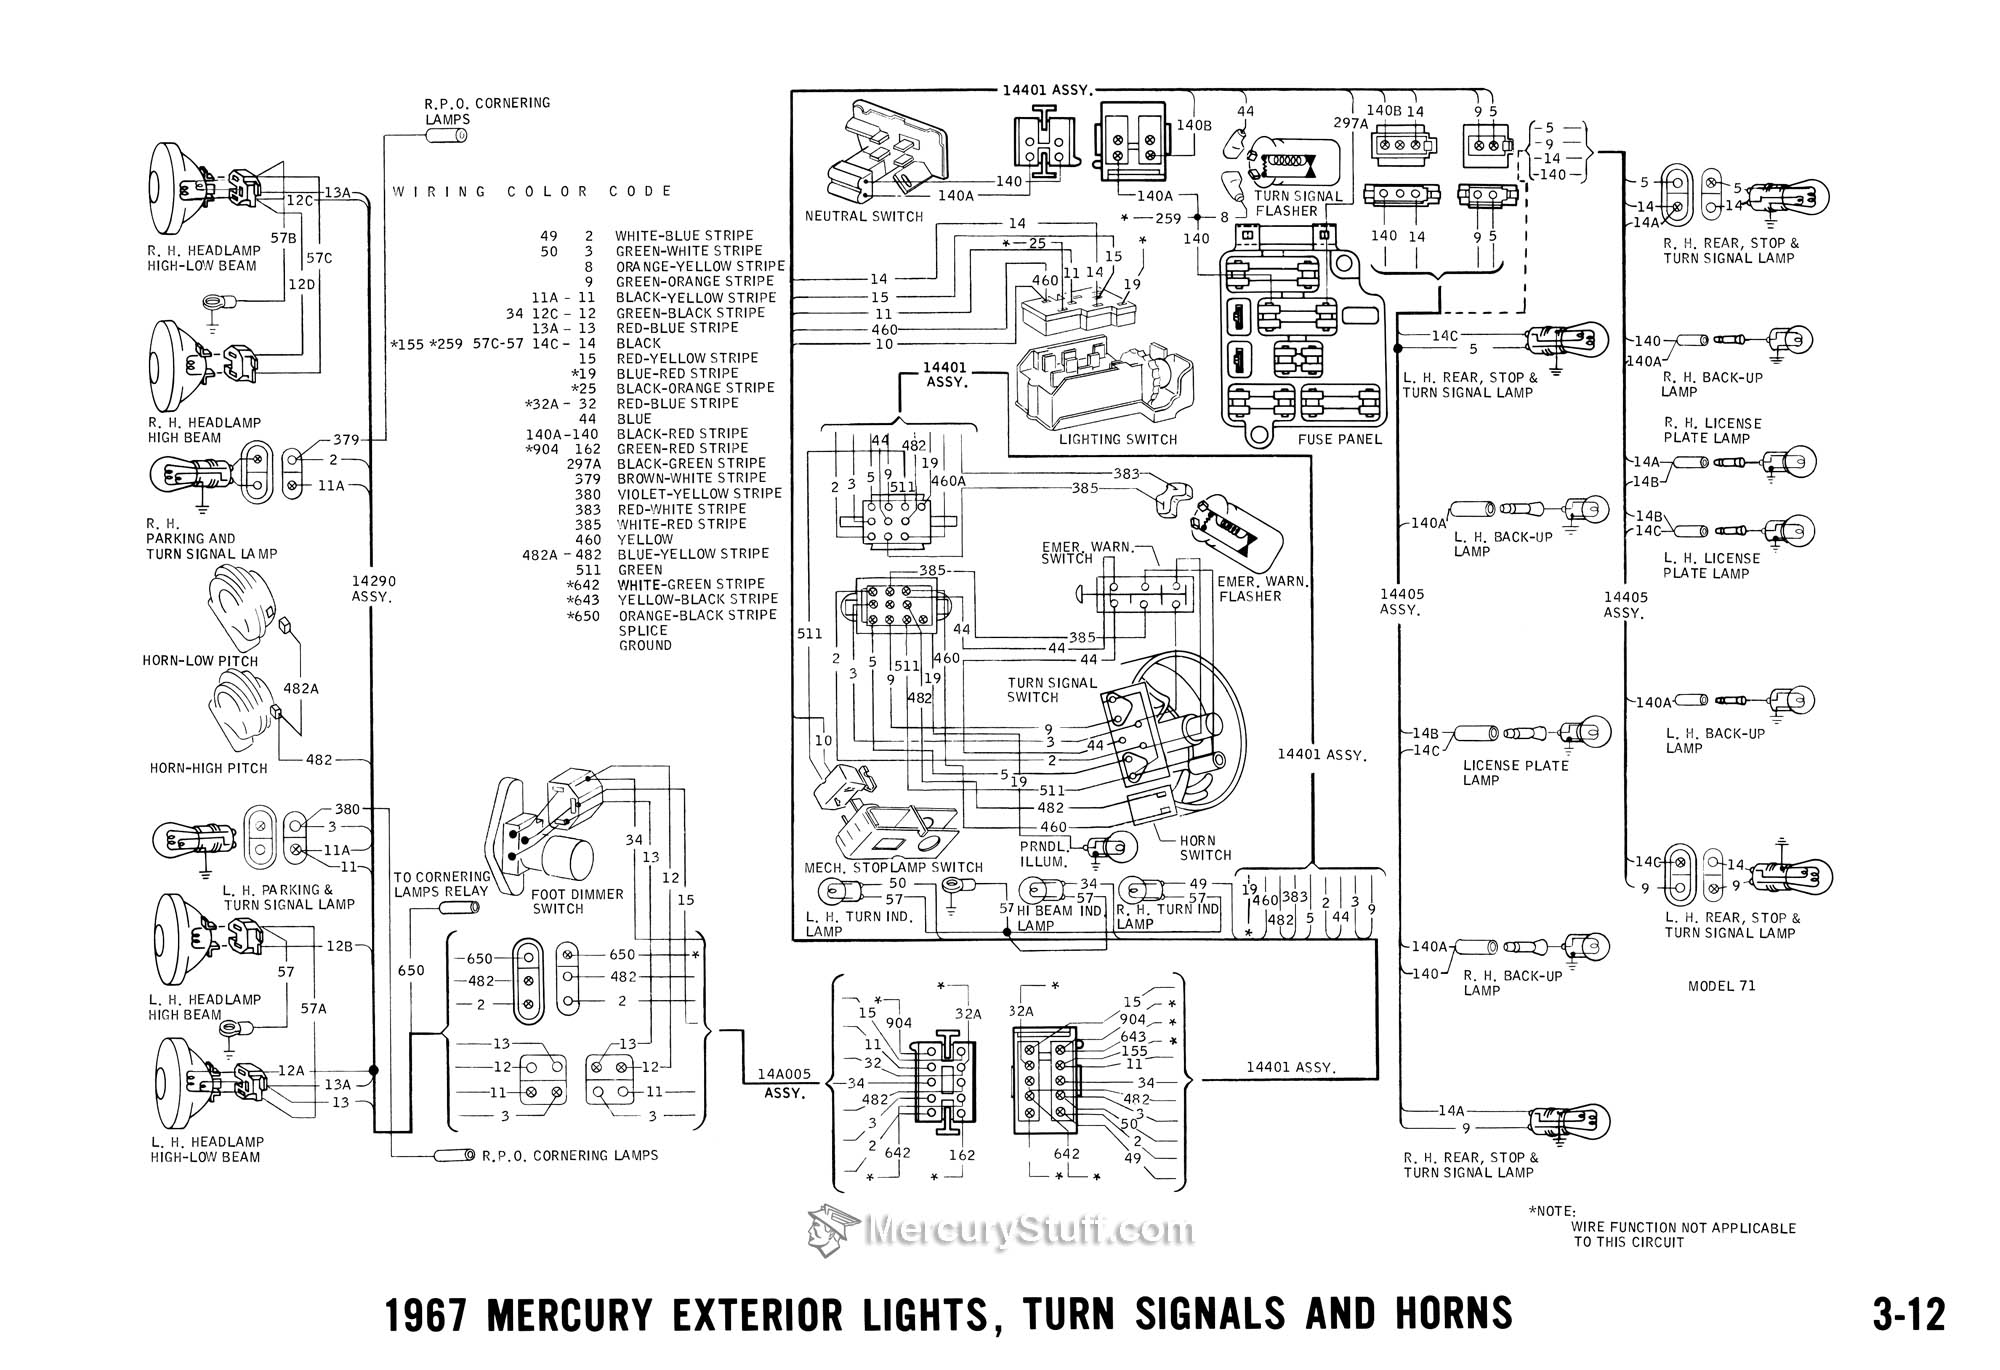 1967 mercury exterior lights turn signals horns wiring diagram 2006 mercury grand marquis the wiring diagram mercury 14 pin wiring harness diagram at nearapp.co